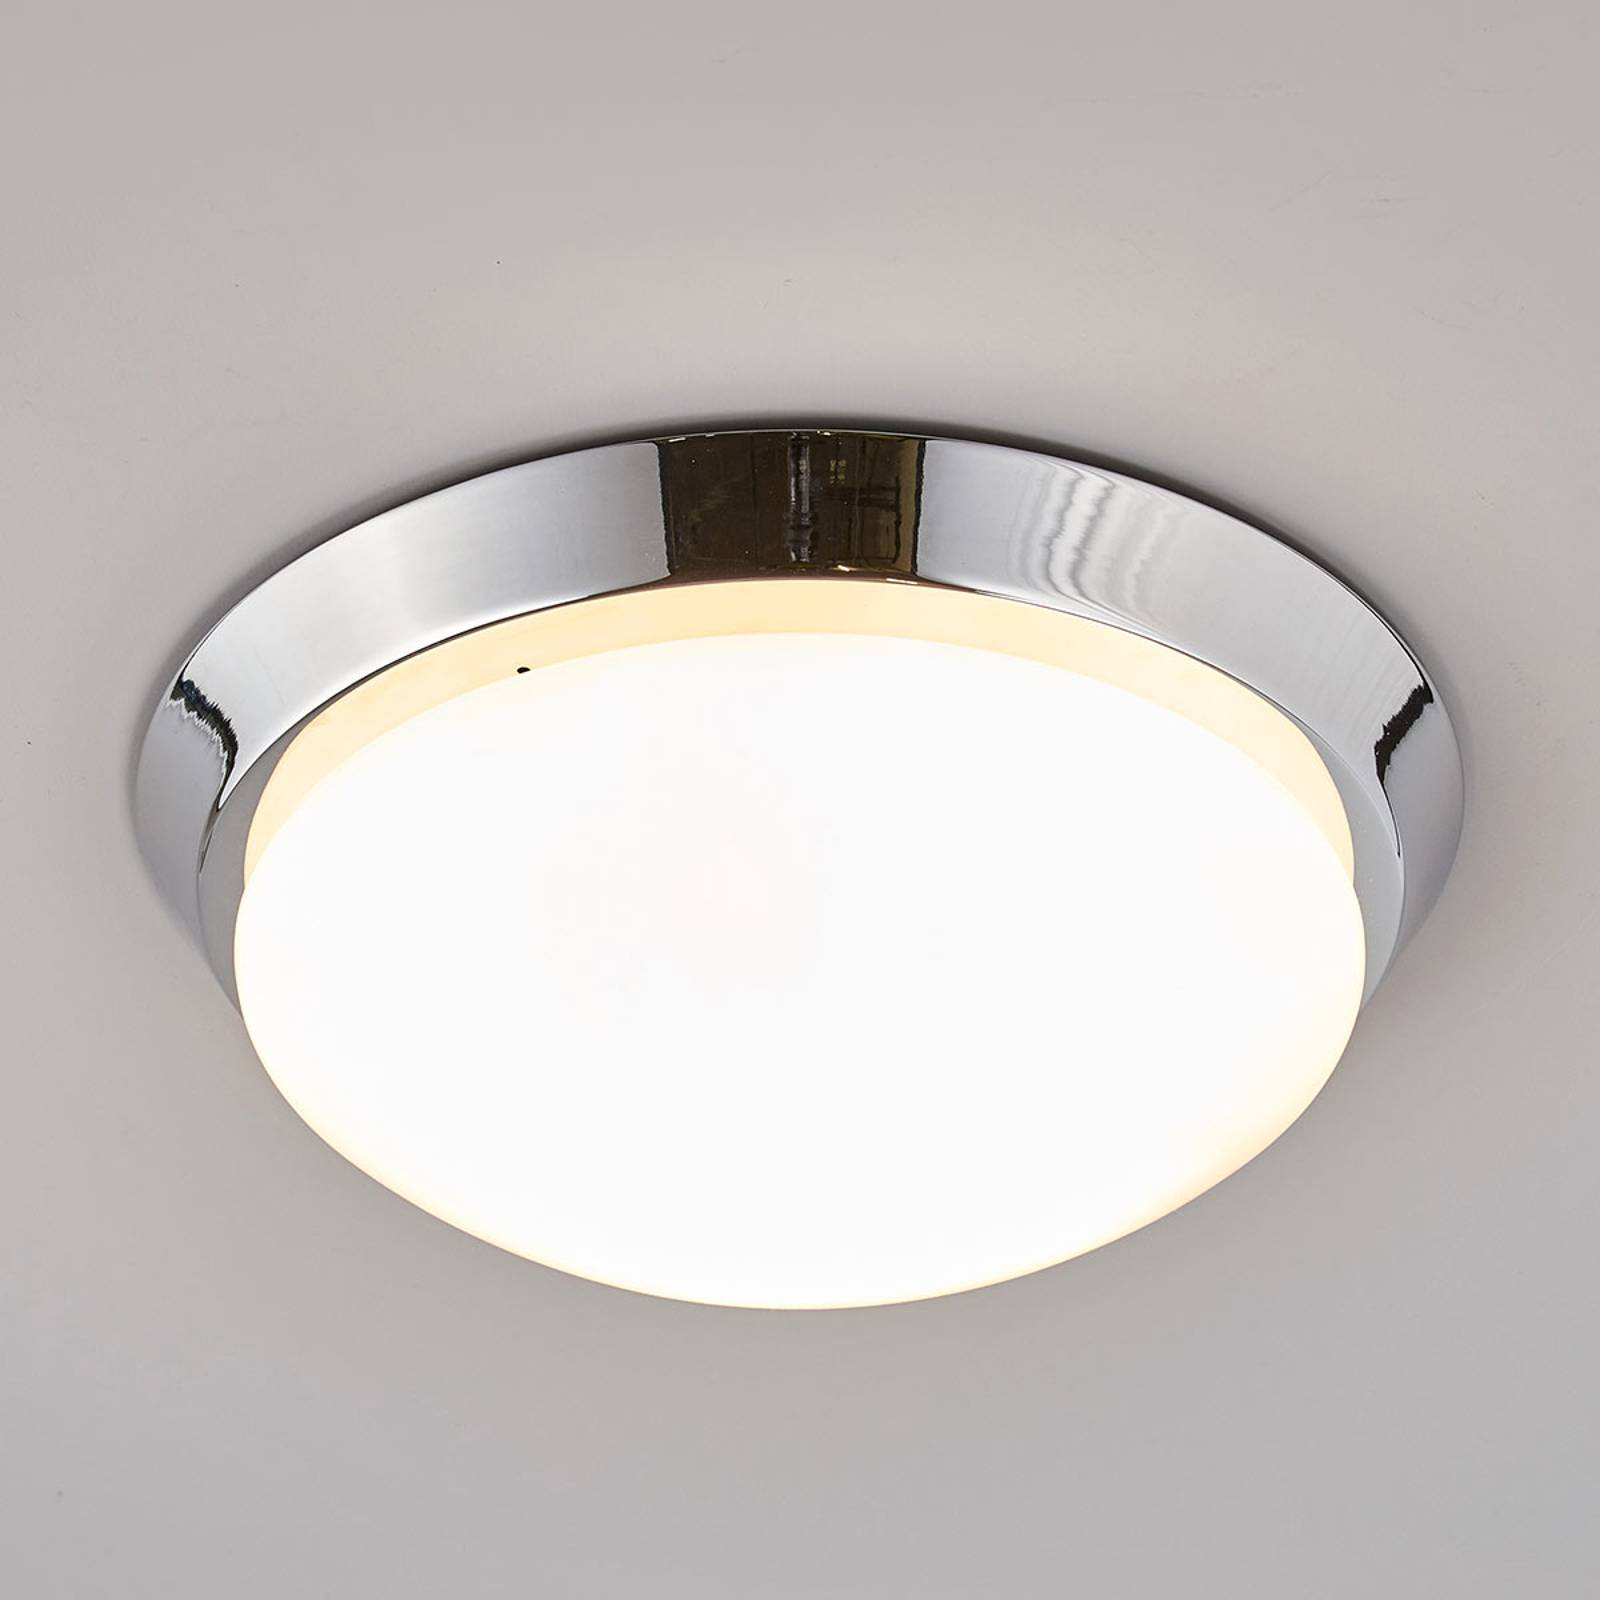 Round ceiling light Dilani for the bathroom from Lindby